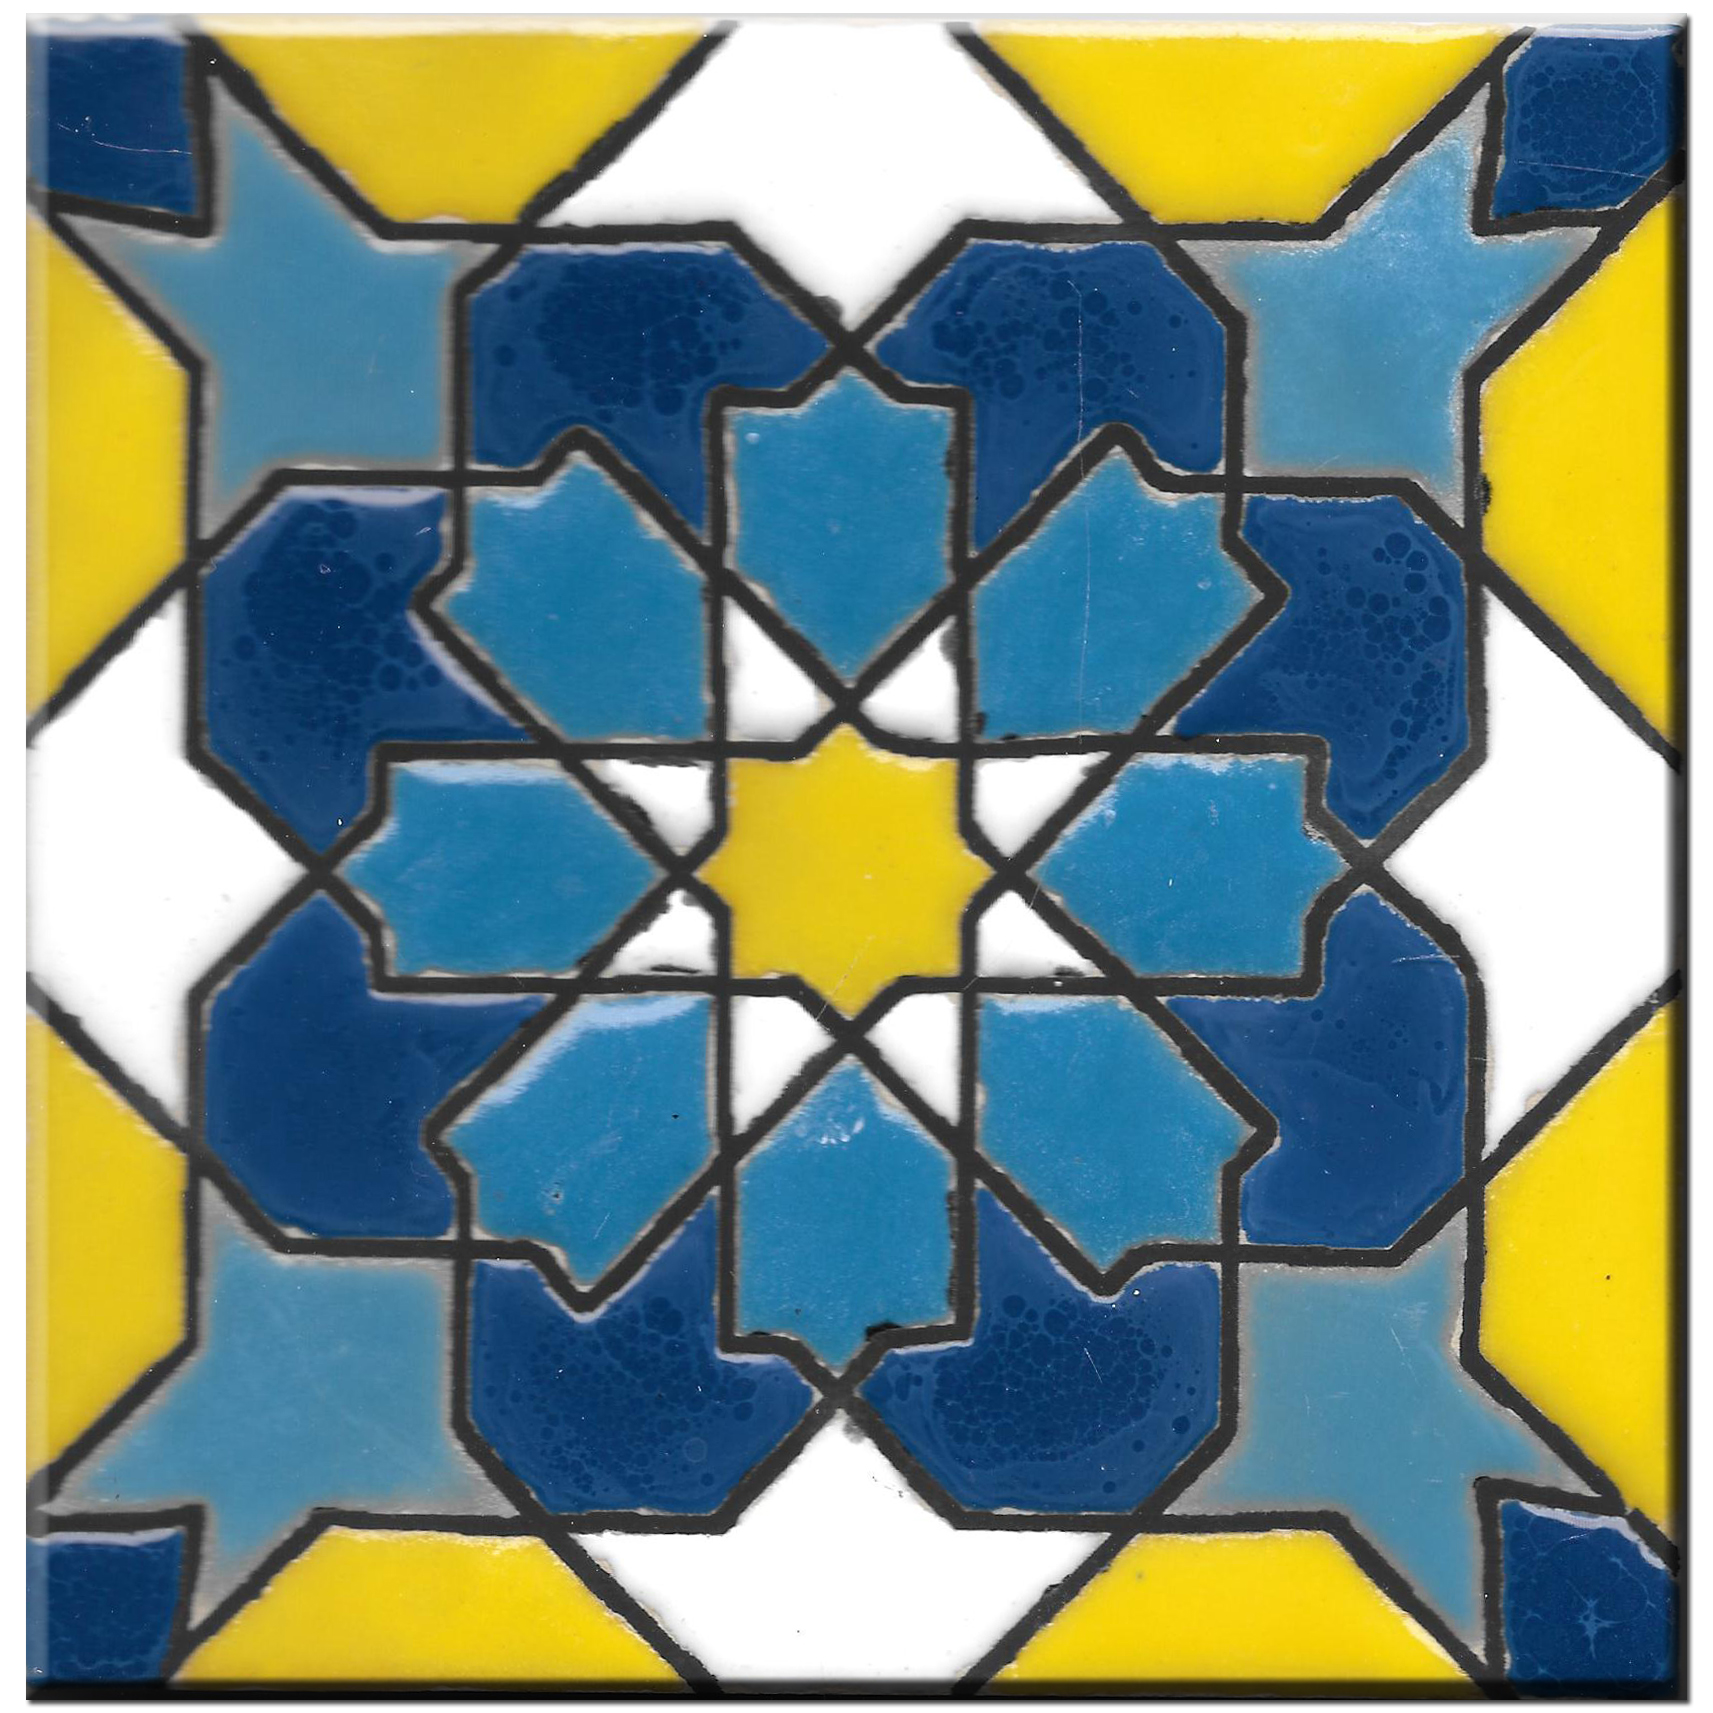 Handmade tile 14x14cm - Spanish Arabic 1 - Color A